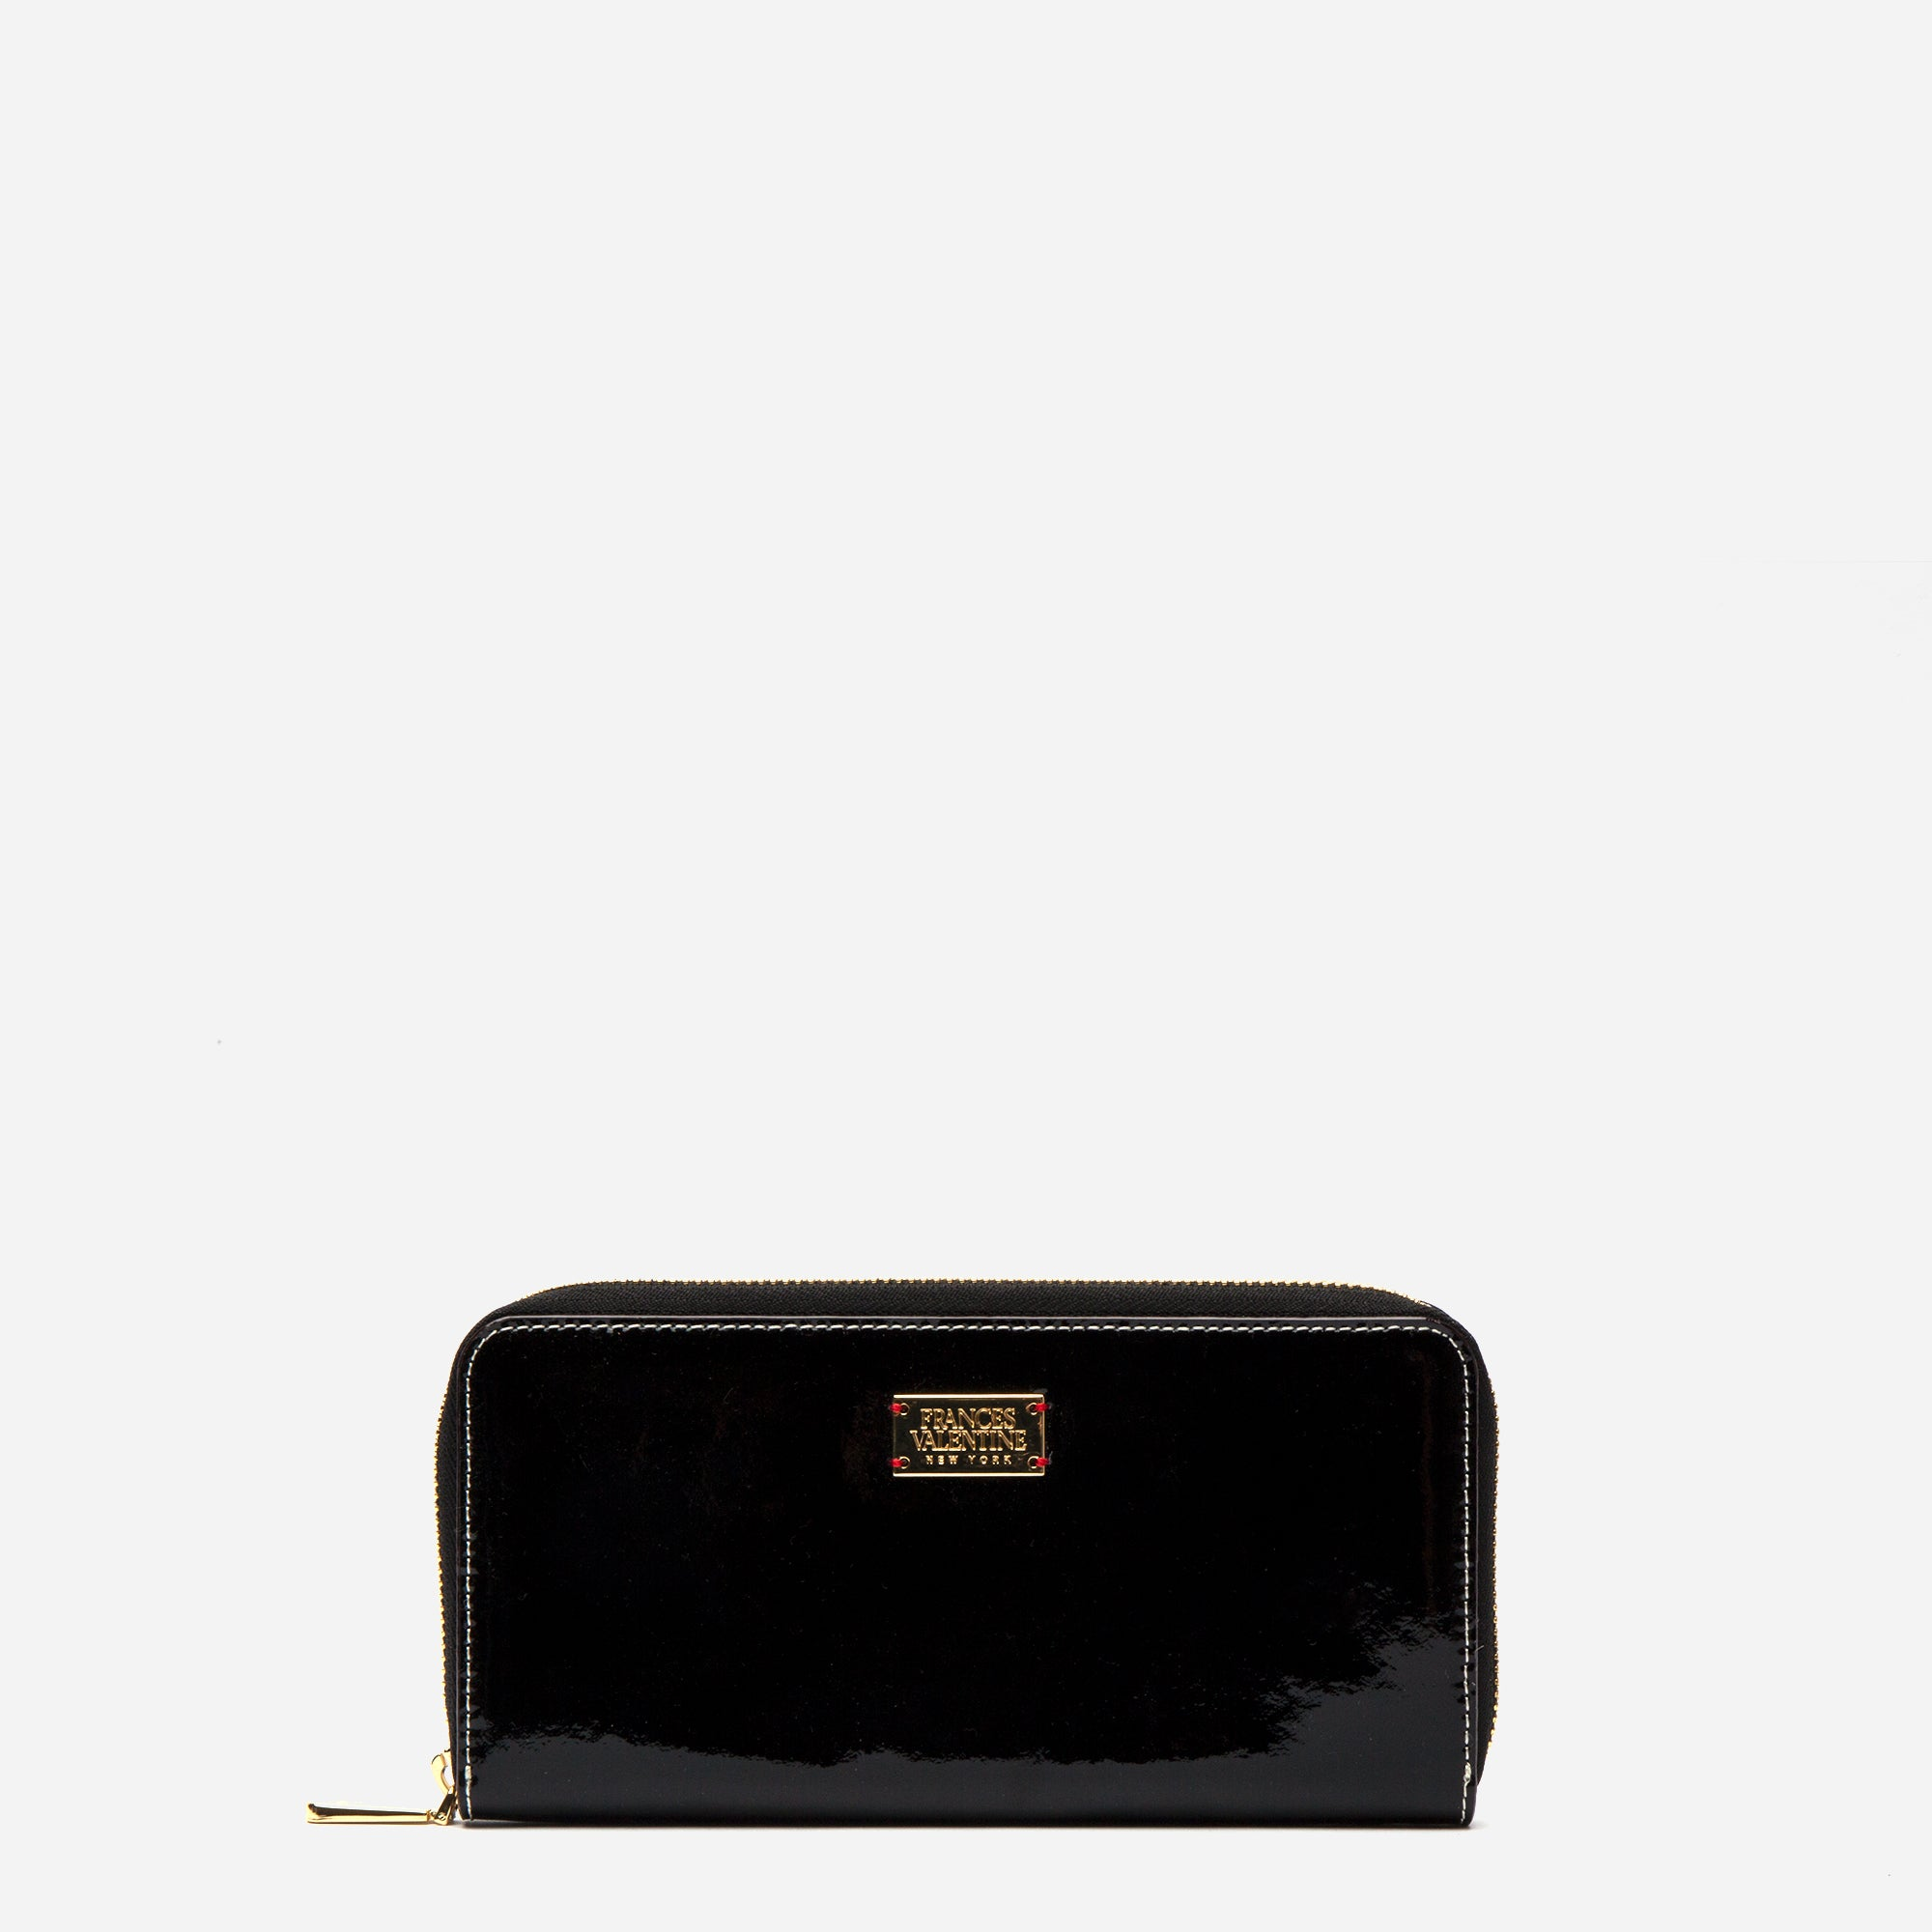 Washington Zip Wallet Soft Patent Black Oyster